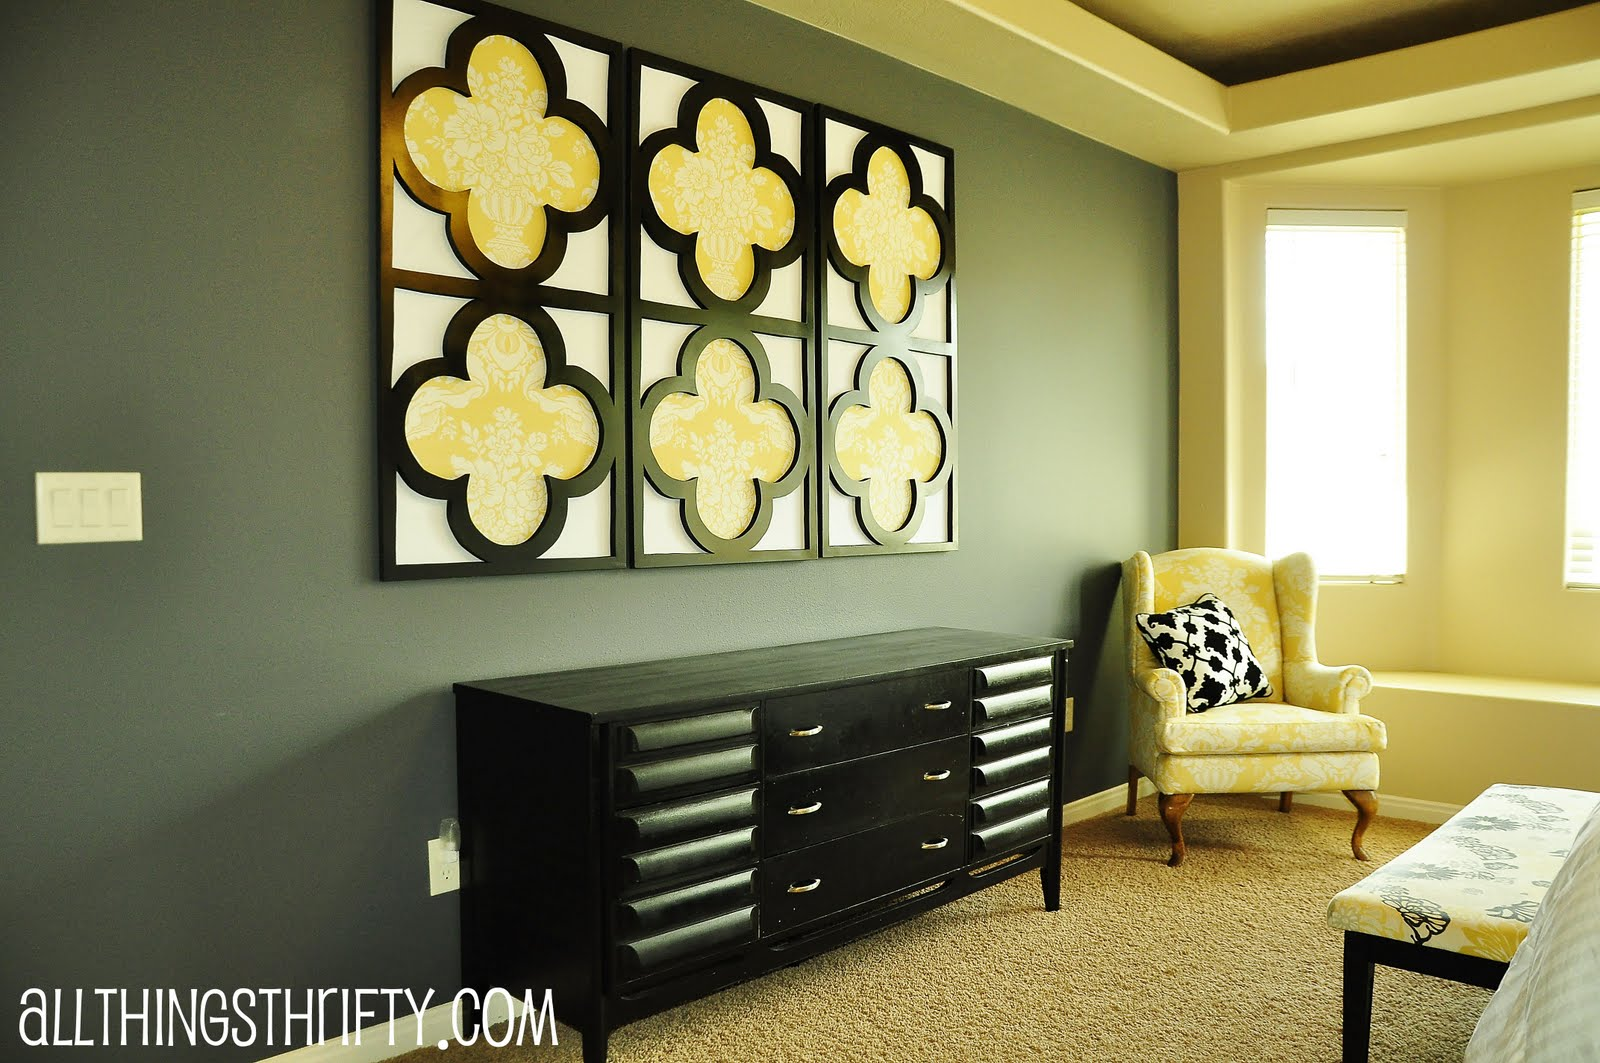 Tutorial Quatrefoil Diy Decorative Wall Art